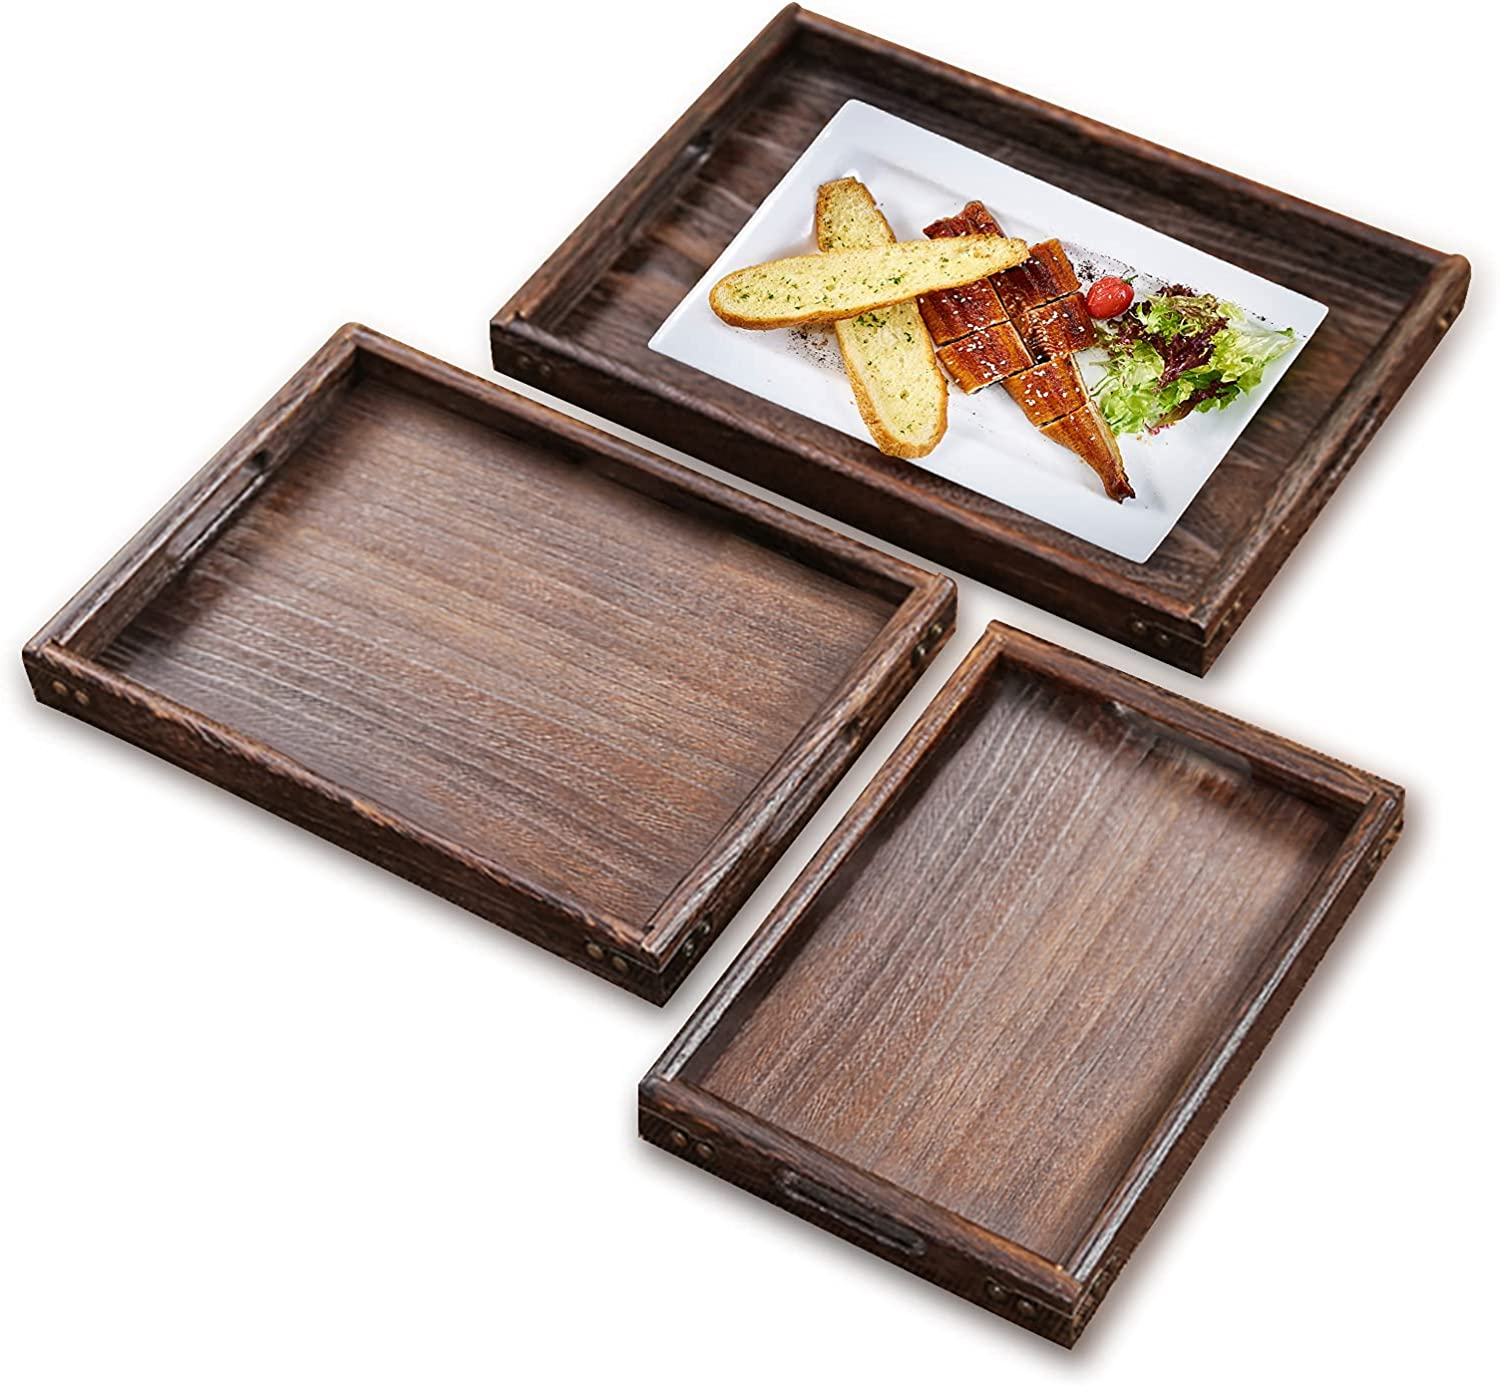 3 Pcs Wooden Serving Tray, Decorative Serving Tray with Handles, Multipurpose Serving Tray Platter for Breakfast | Appetizer | Coffee | Bar and Food, Great for BBQ | Camping | Party